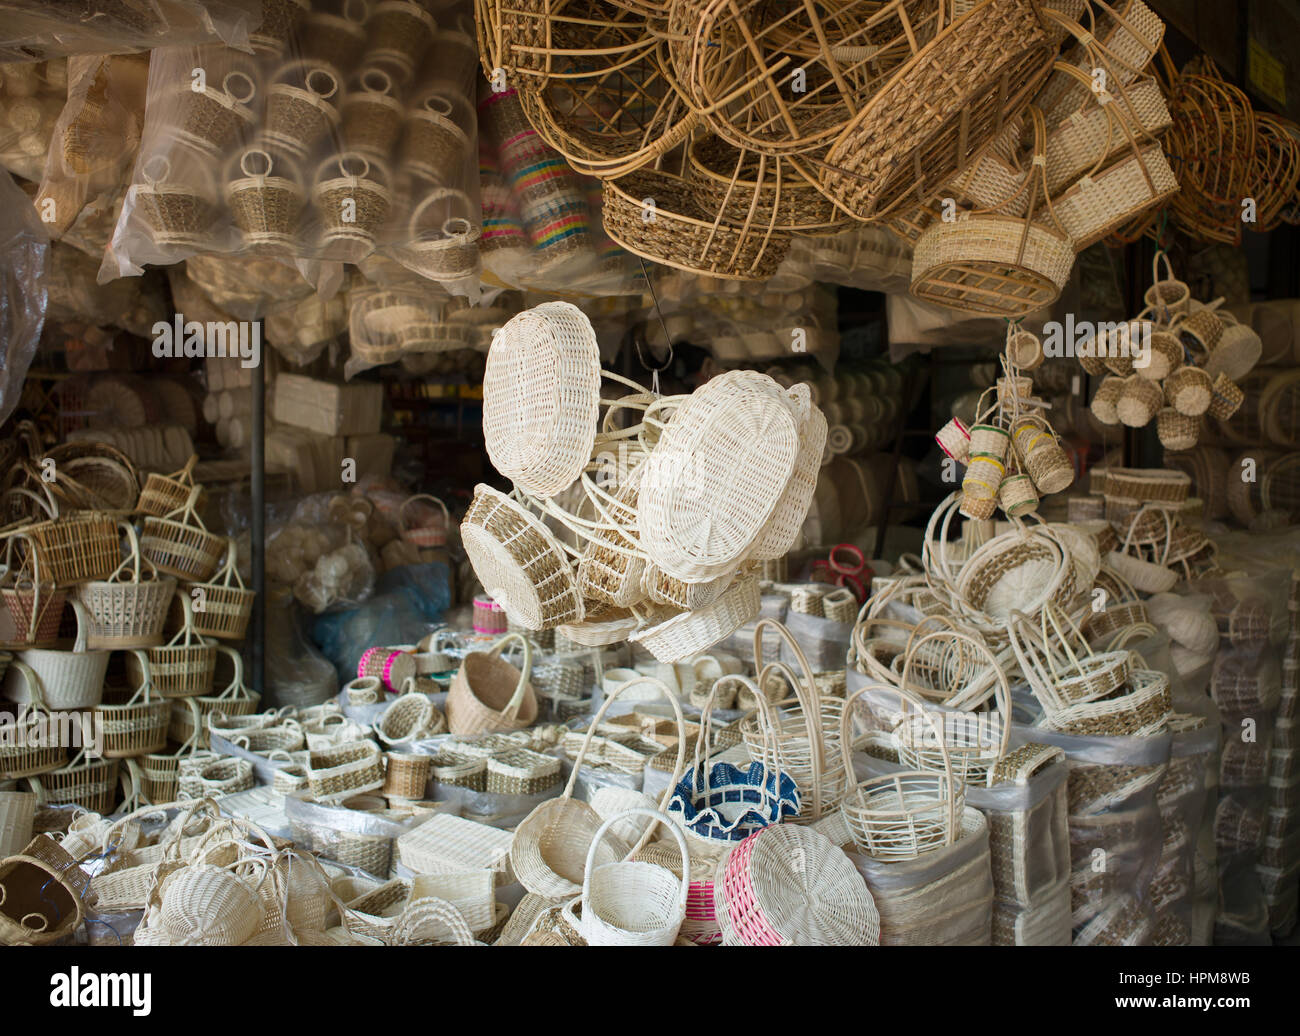 Baskets for sale in Chatuchak market, Bangkok - Stock Image